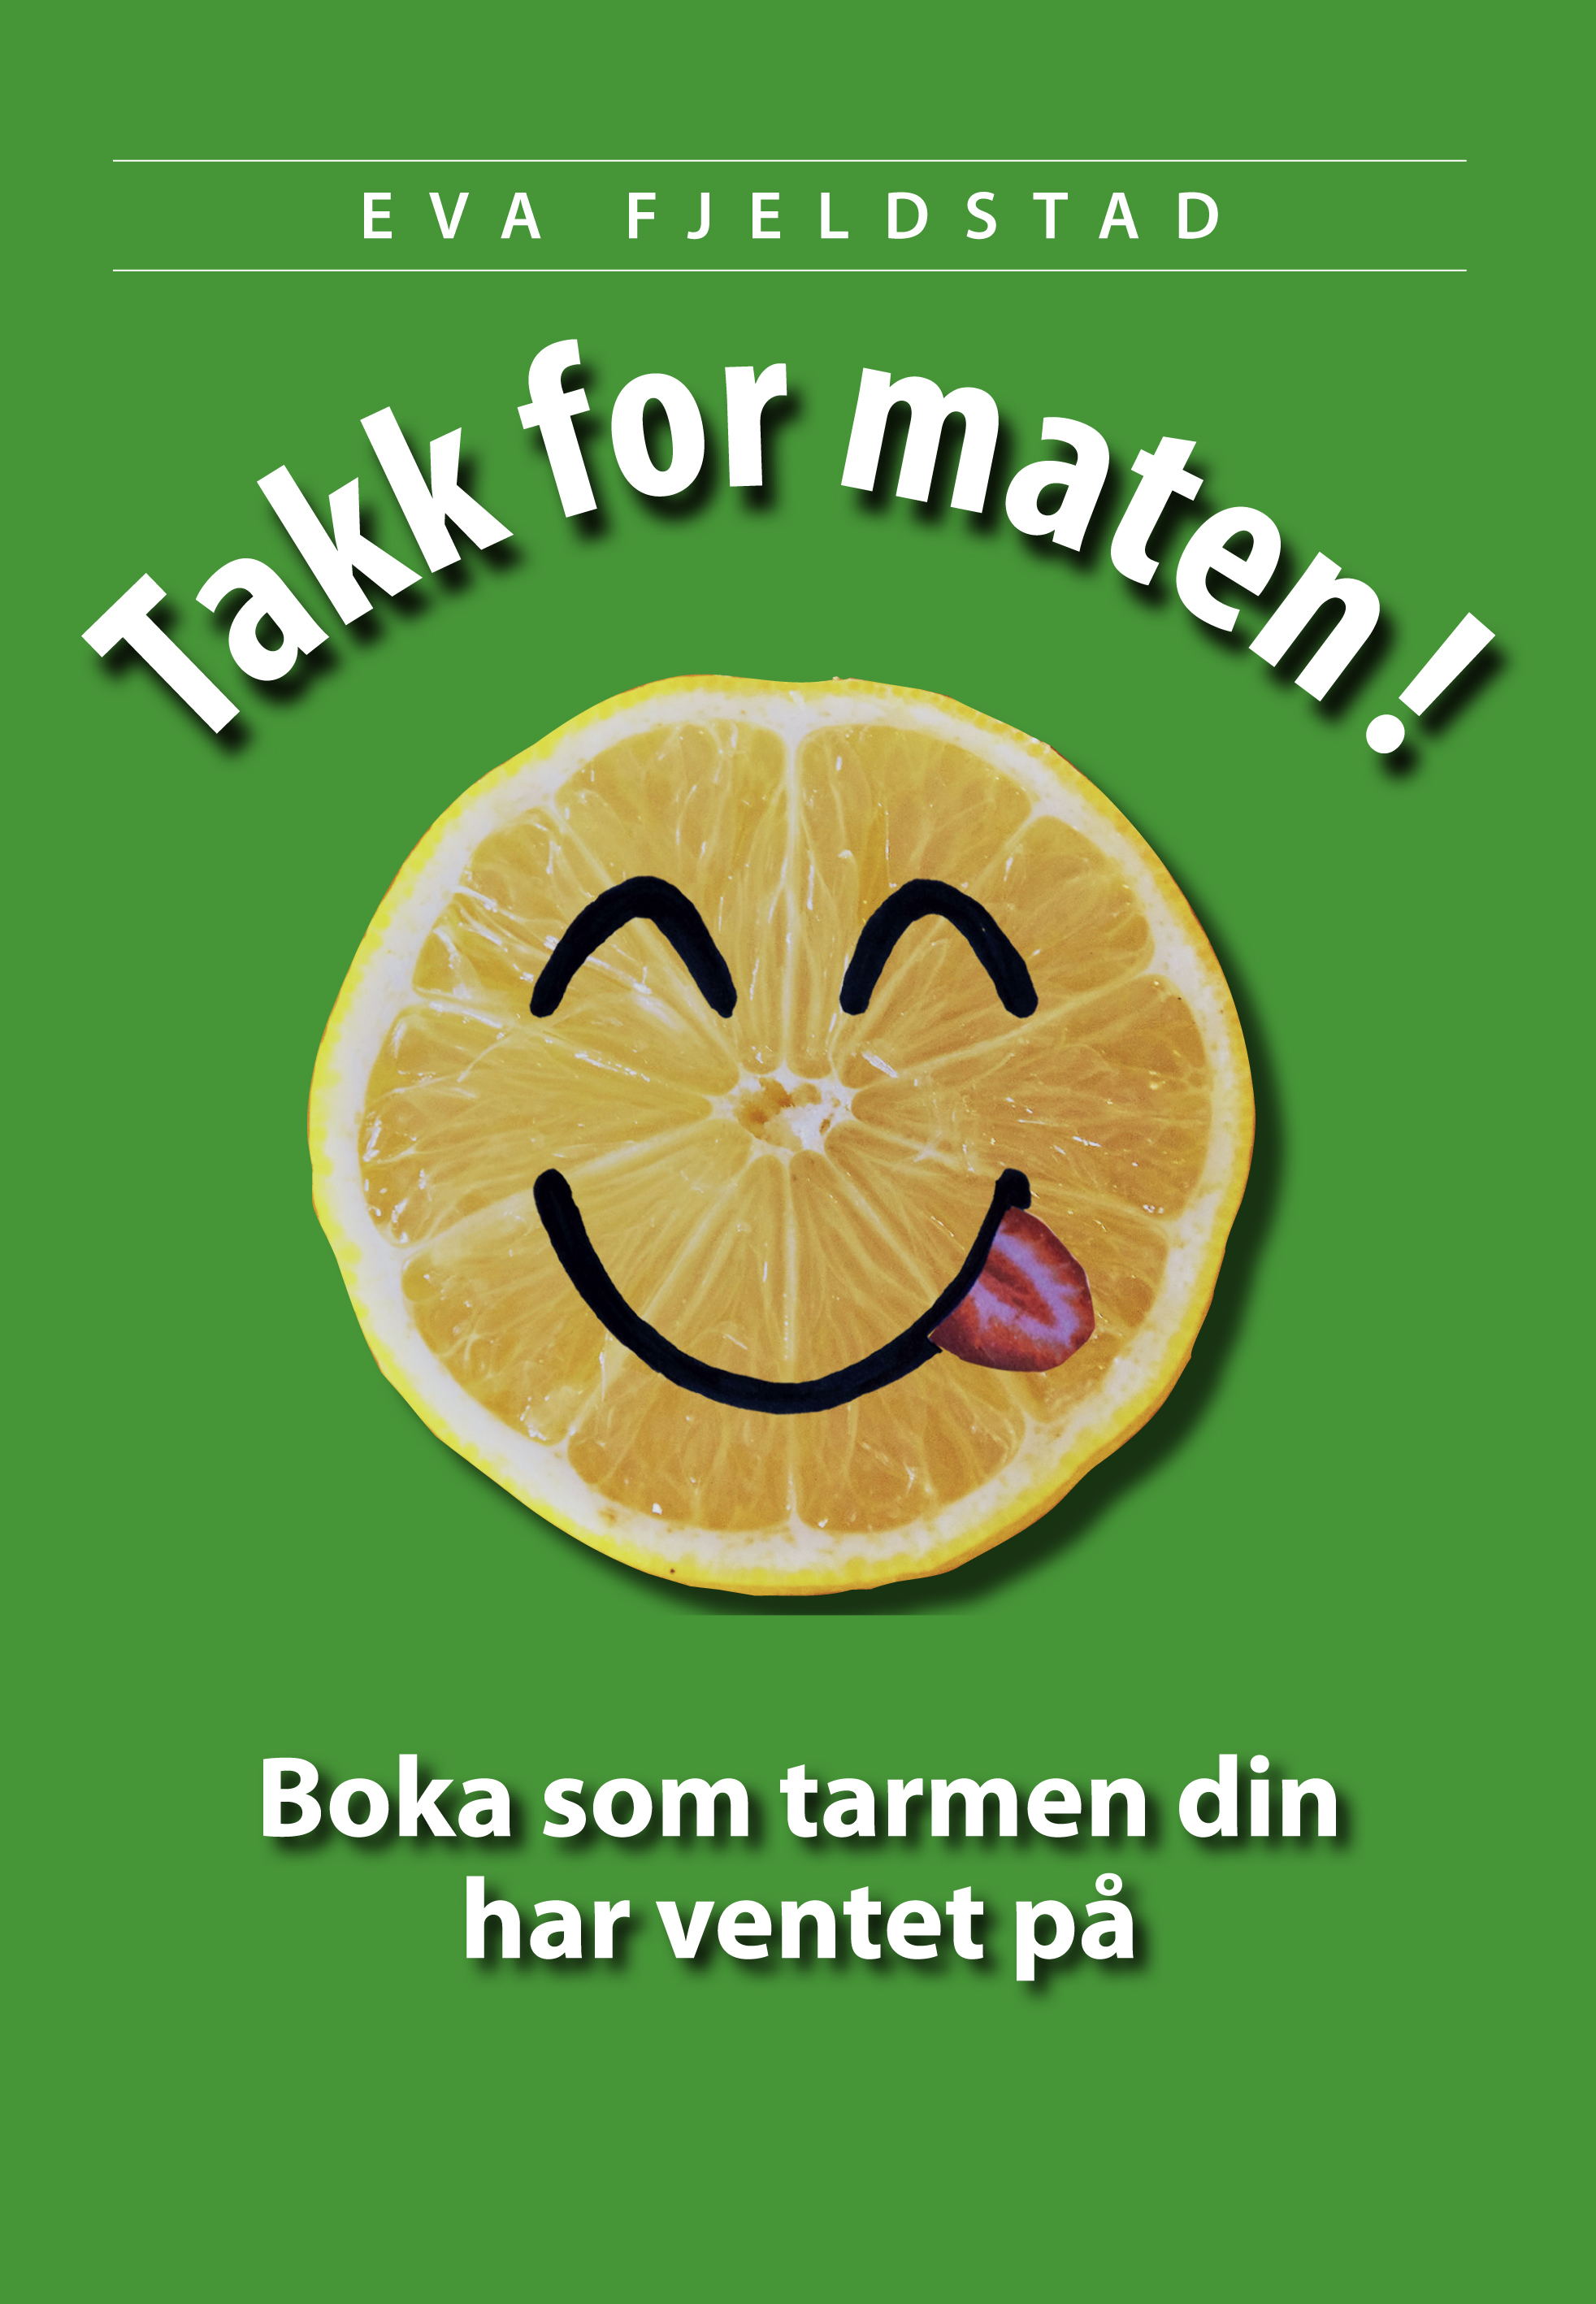 mat for tarmen